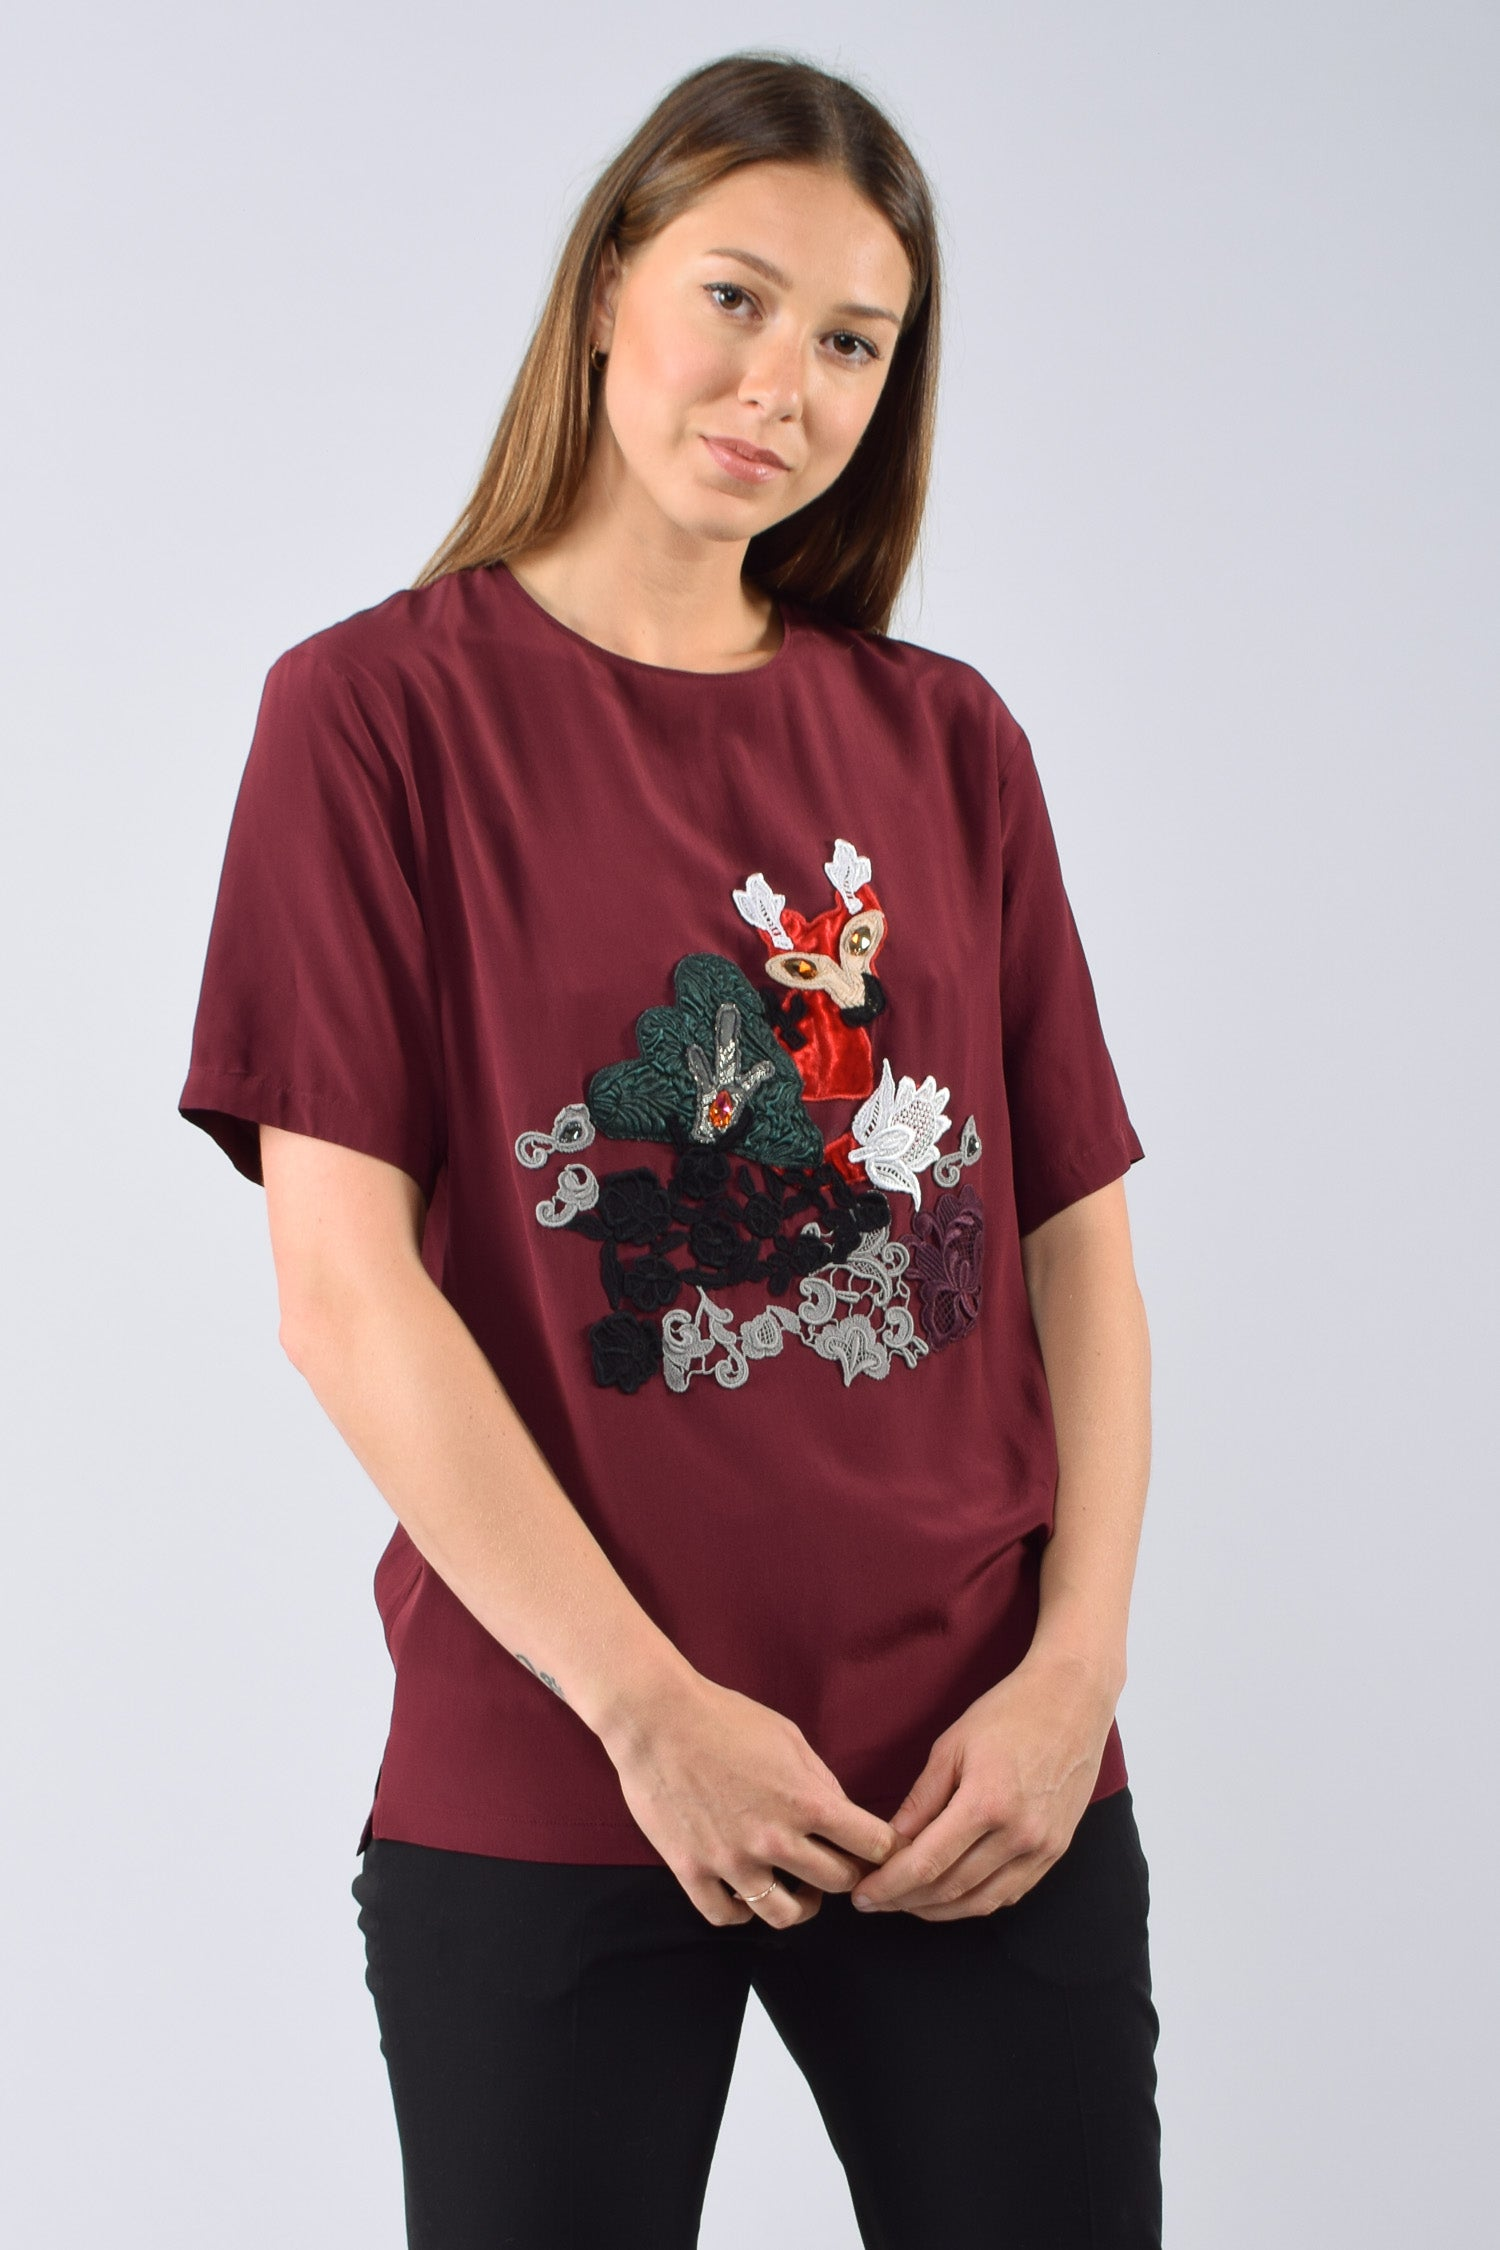 Dolce & Gabbana Burgandy Embroidered Fox Top Size 36 (As is)